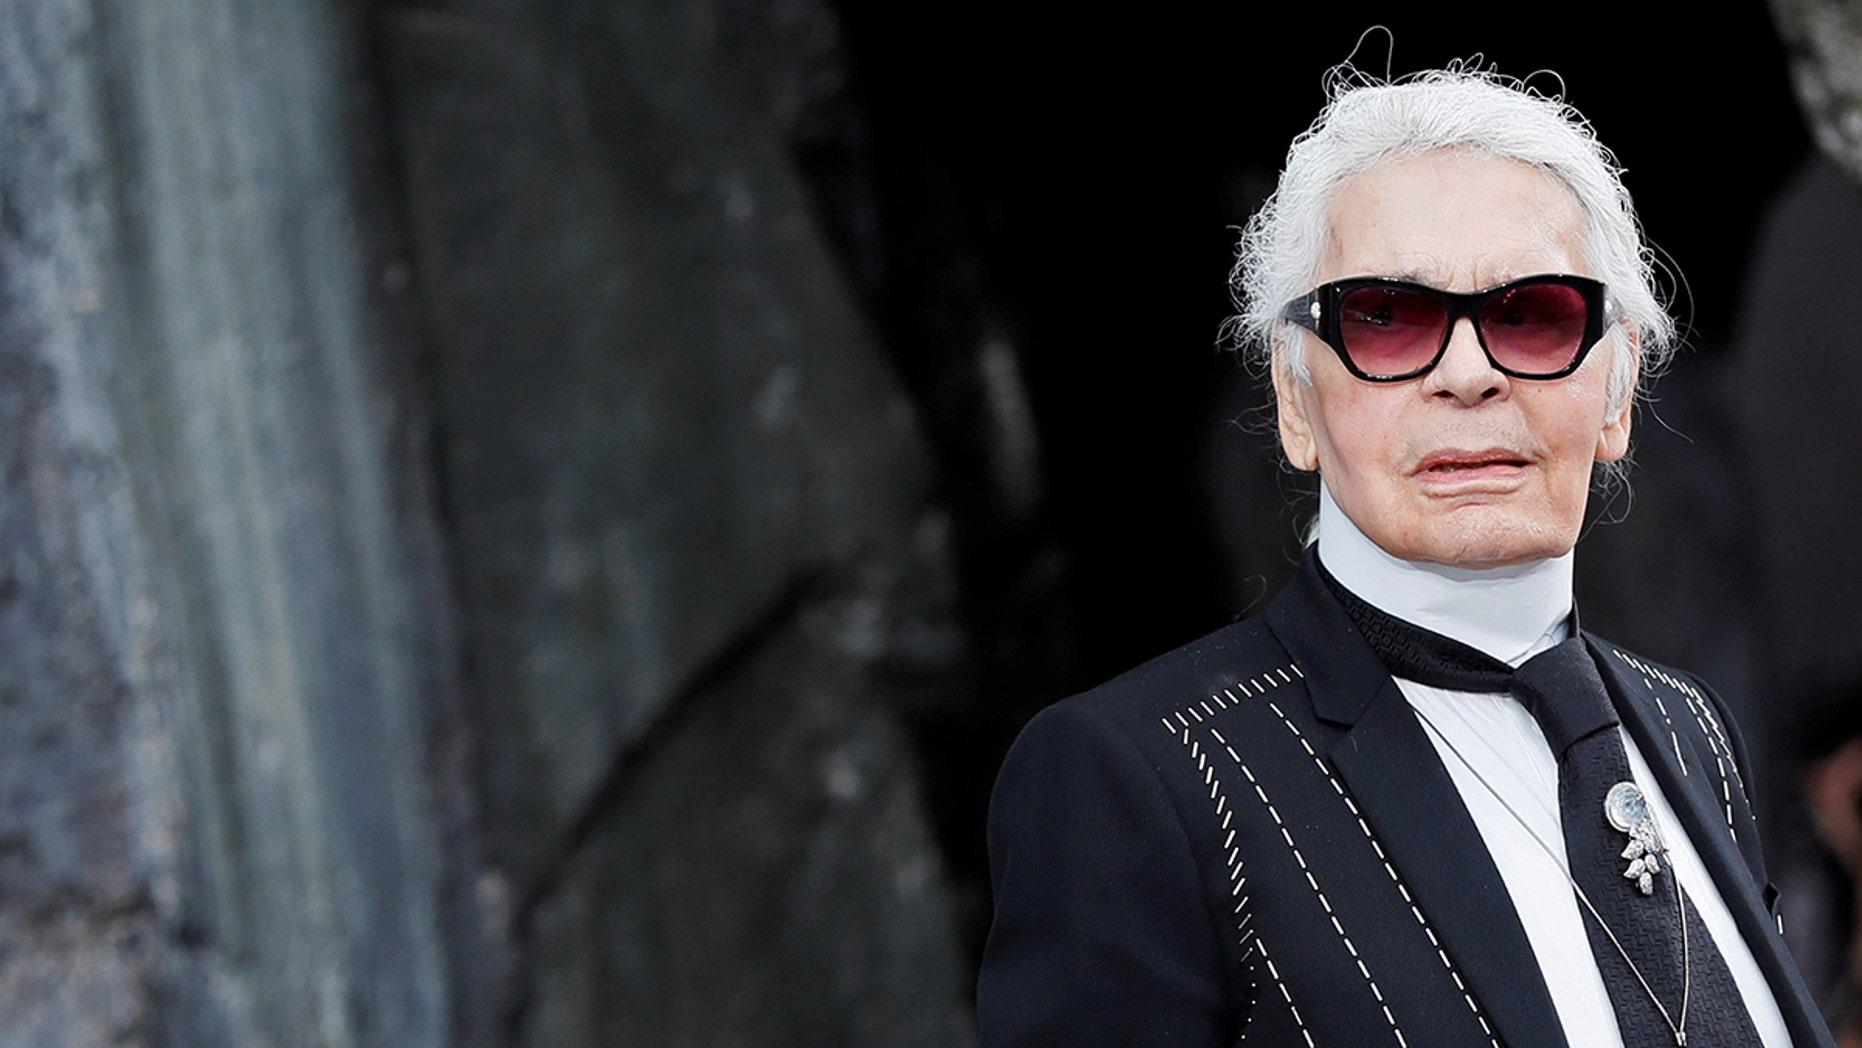 German designer Karl Lagerfeld appears at the end of his Spring/Summer 2018 women's ready-to-wear collection show for fashion house Chanel at the Grand Palais during Paris Fashion Week, France, October 3, 2017. REUTERS/Gonzalo Fuentes - RC18298D3B00